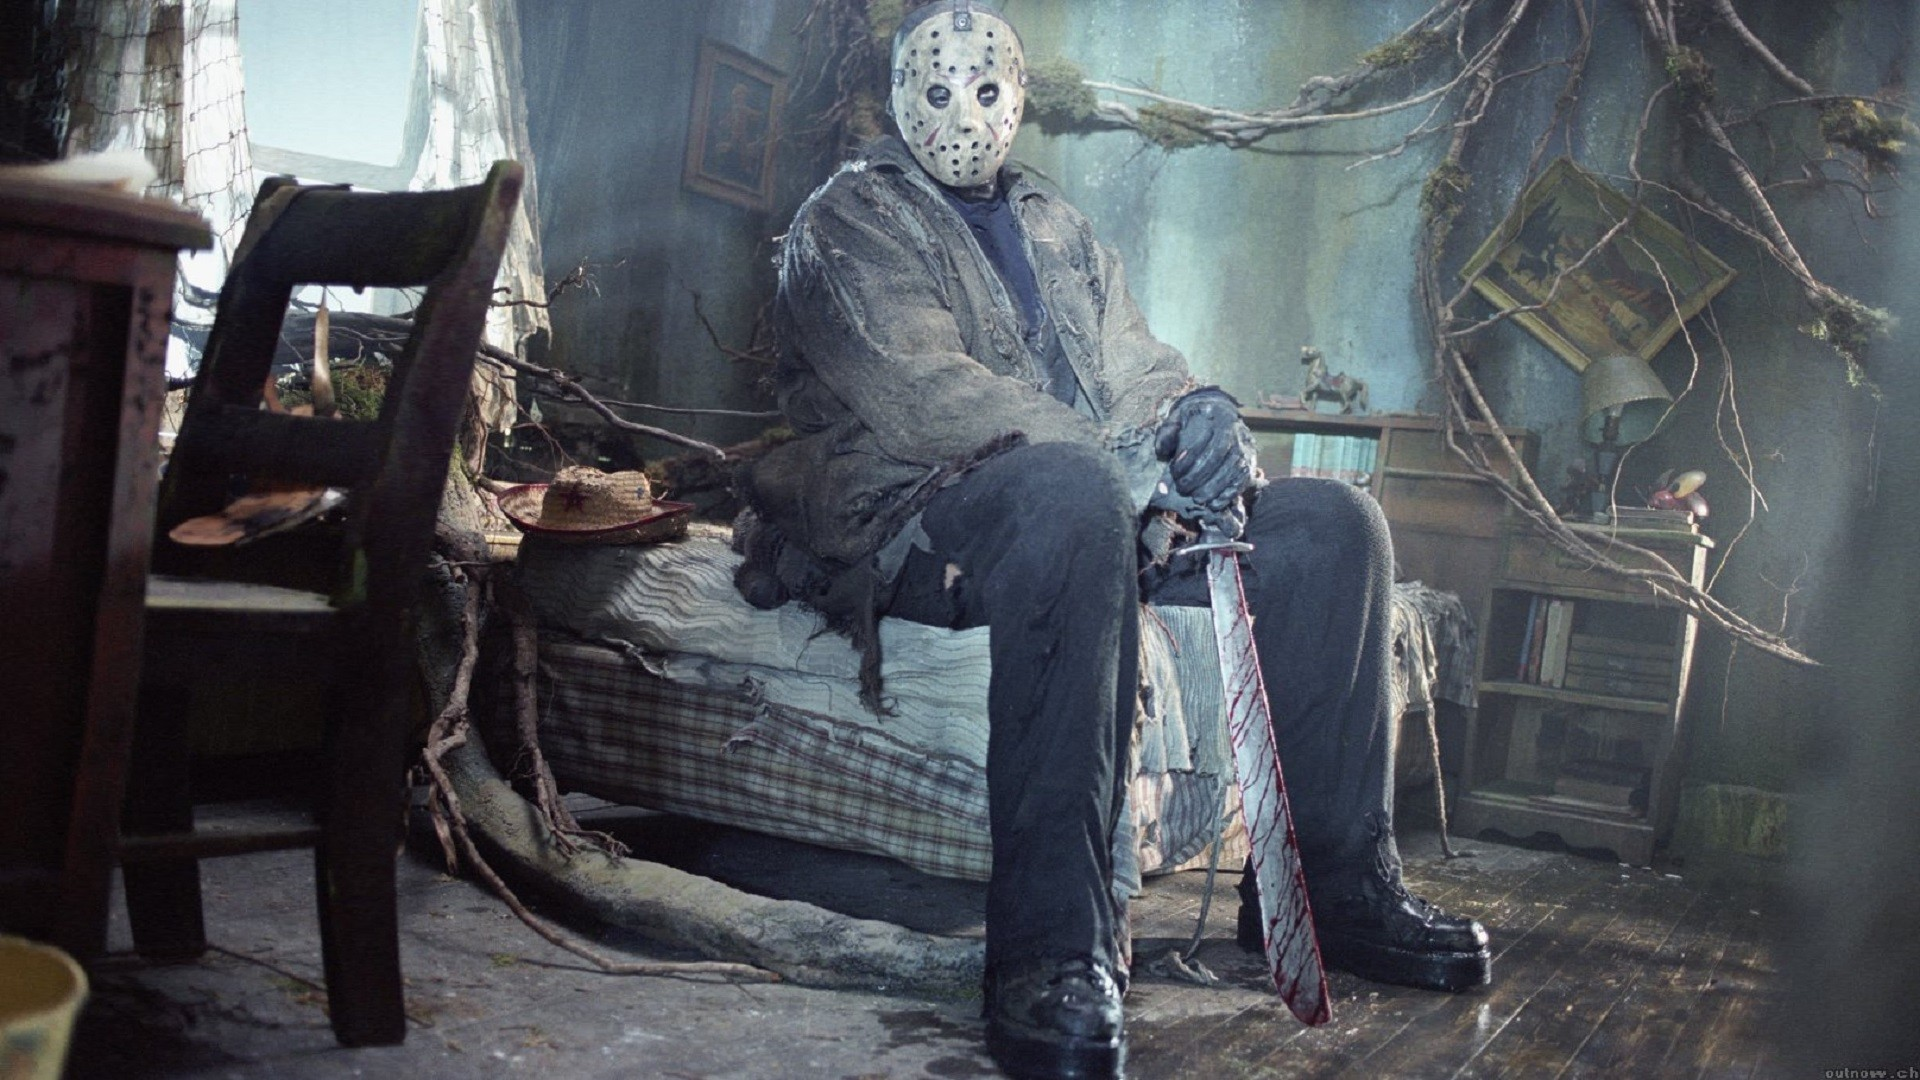 17 Friday The 13th (2009) HD Wallpapers